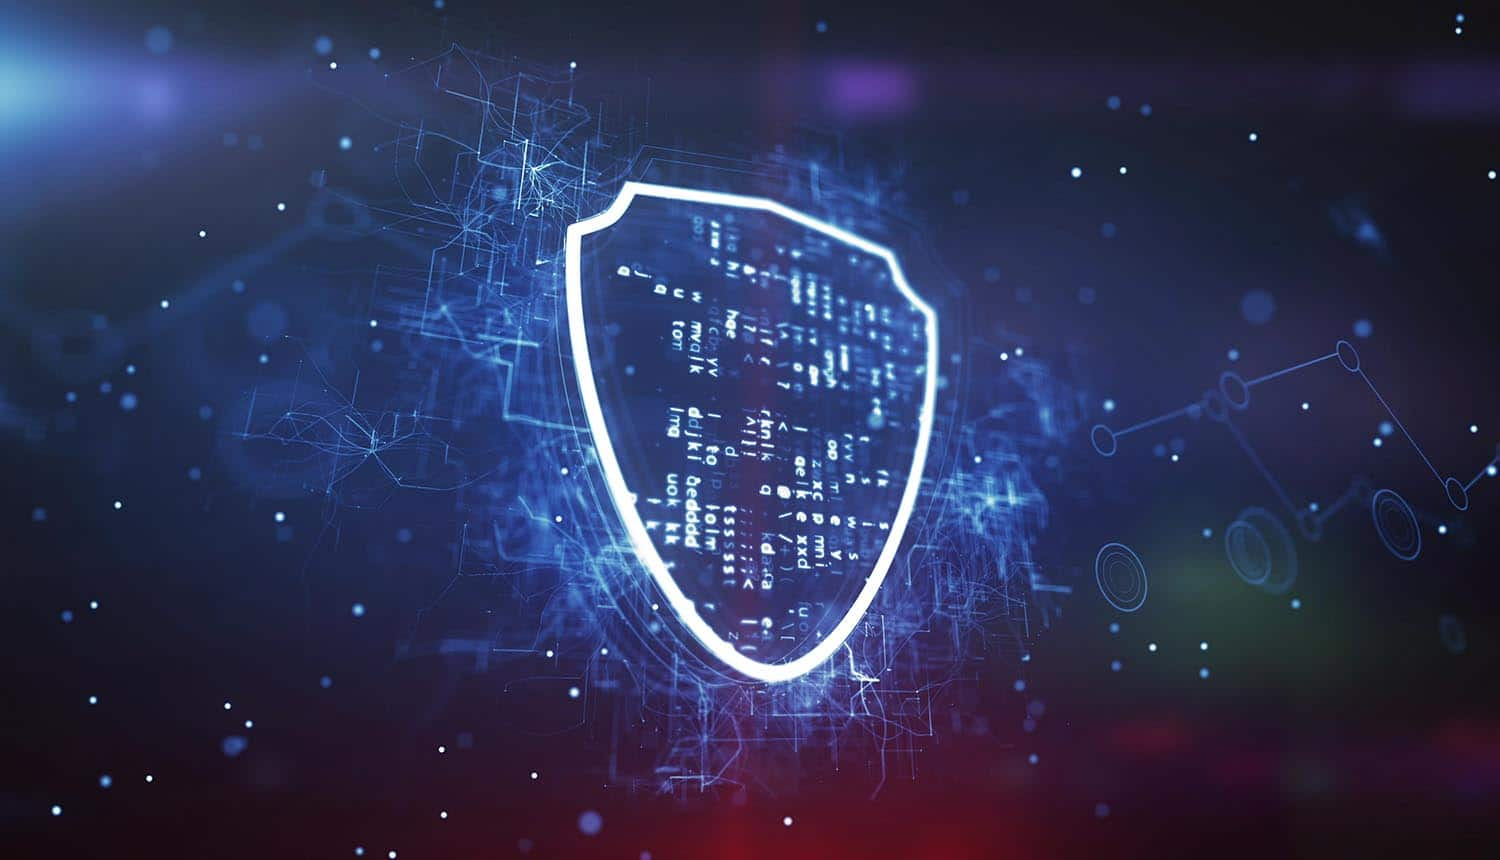 Shield against modern cyber background shows upcoming decision on Schrems II case to invalidate Privacy Shield